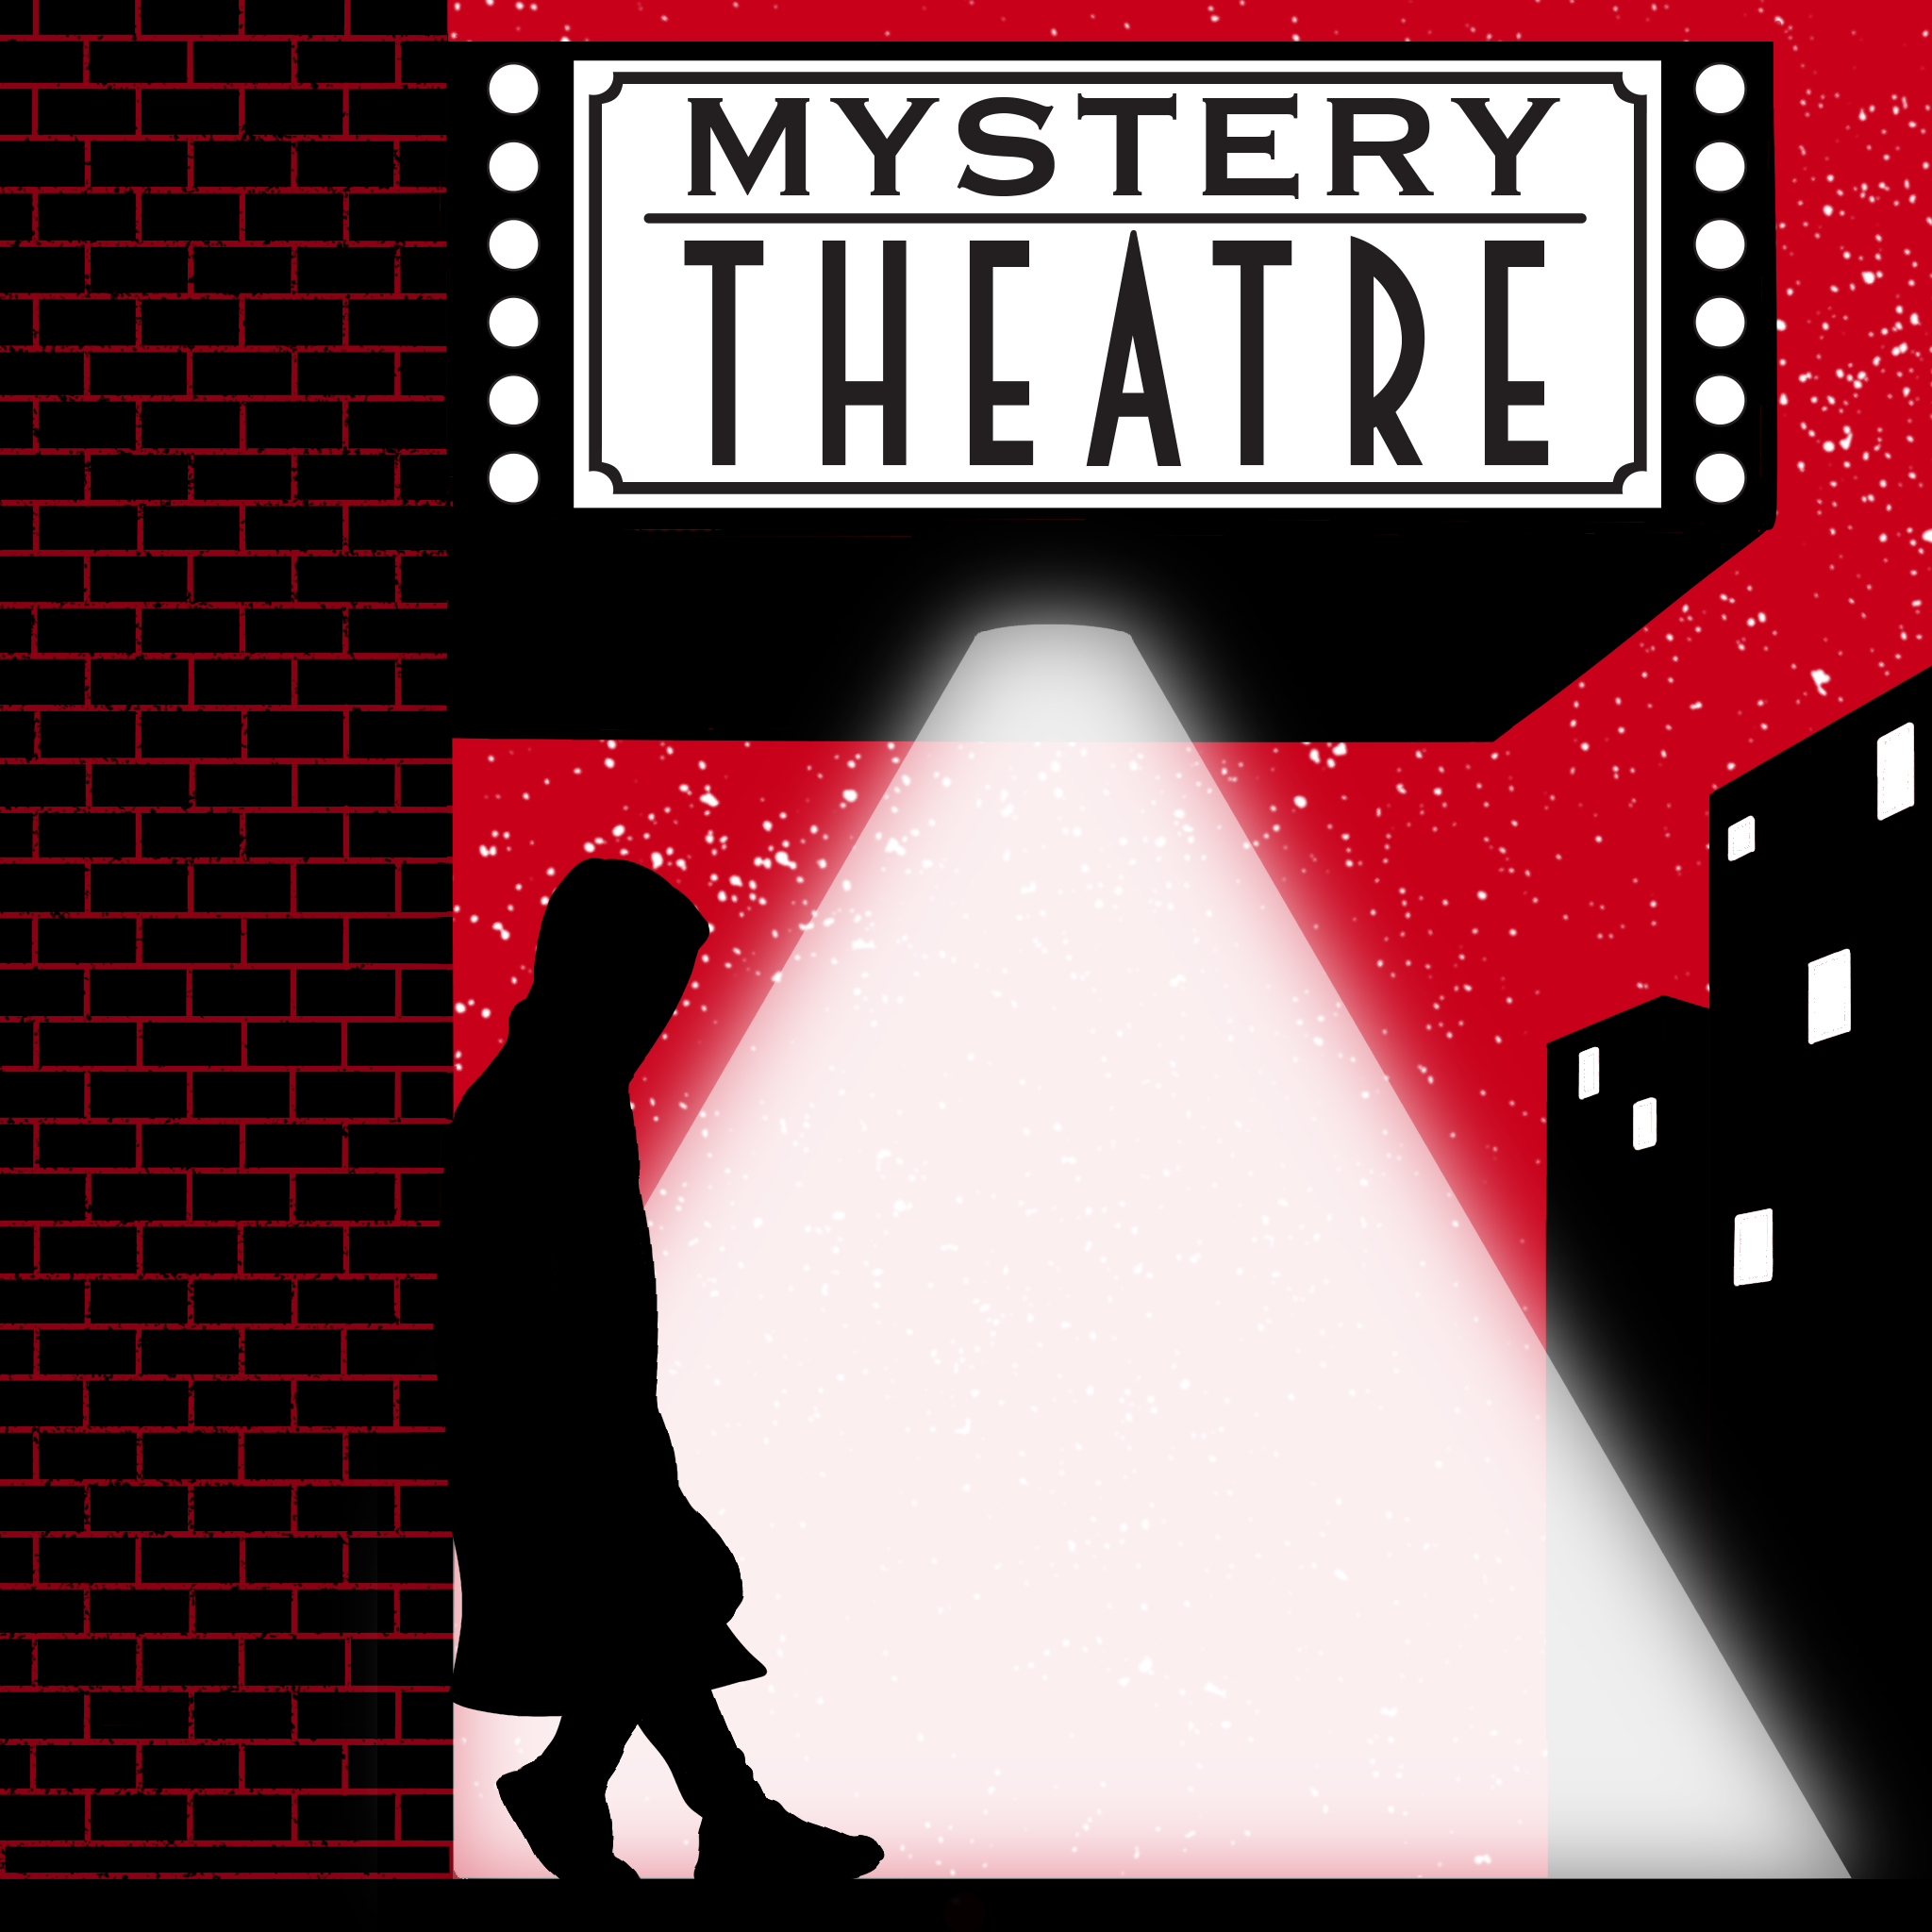 Prime Stage Mystery Theatre show art